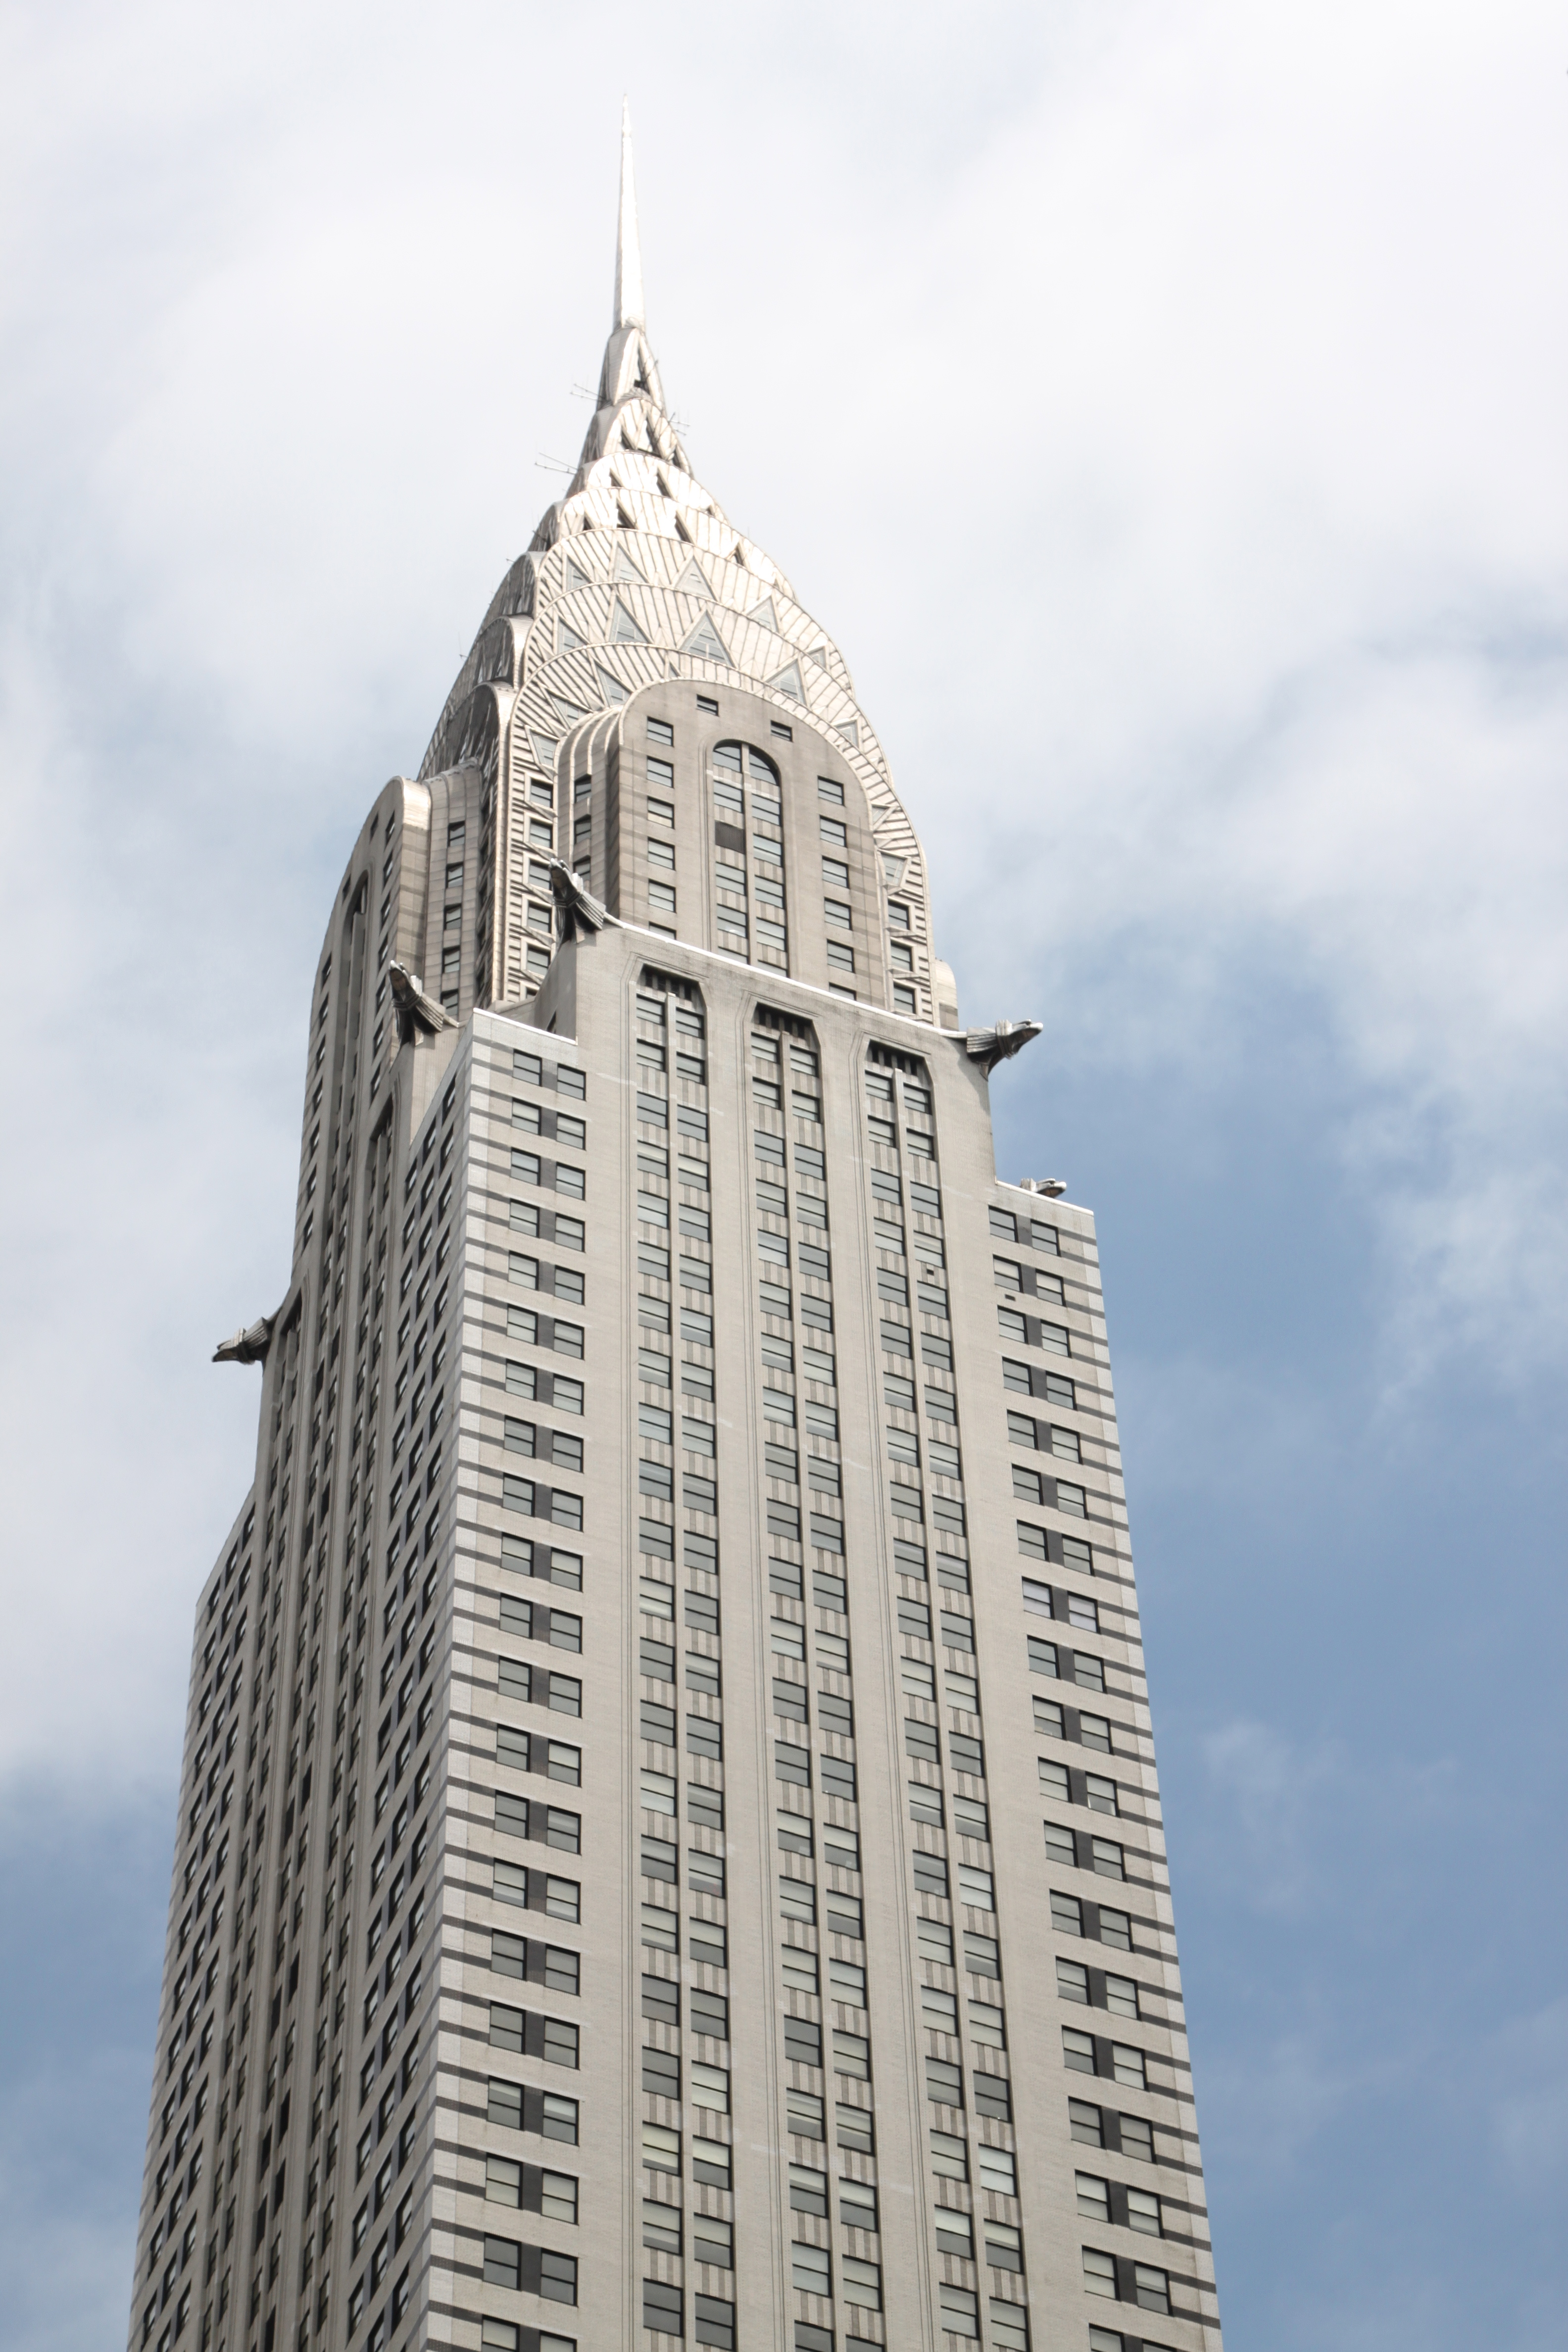 Tallest Building In New York See What Eye See